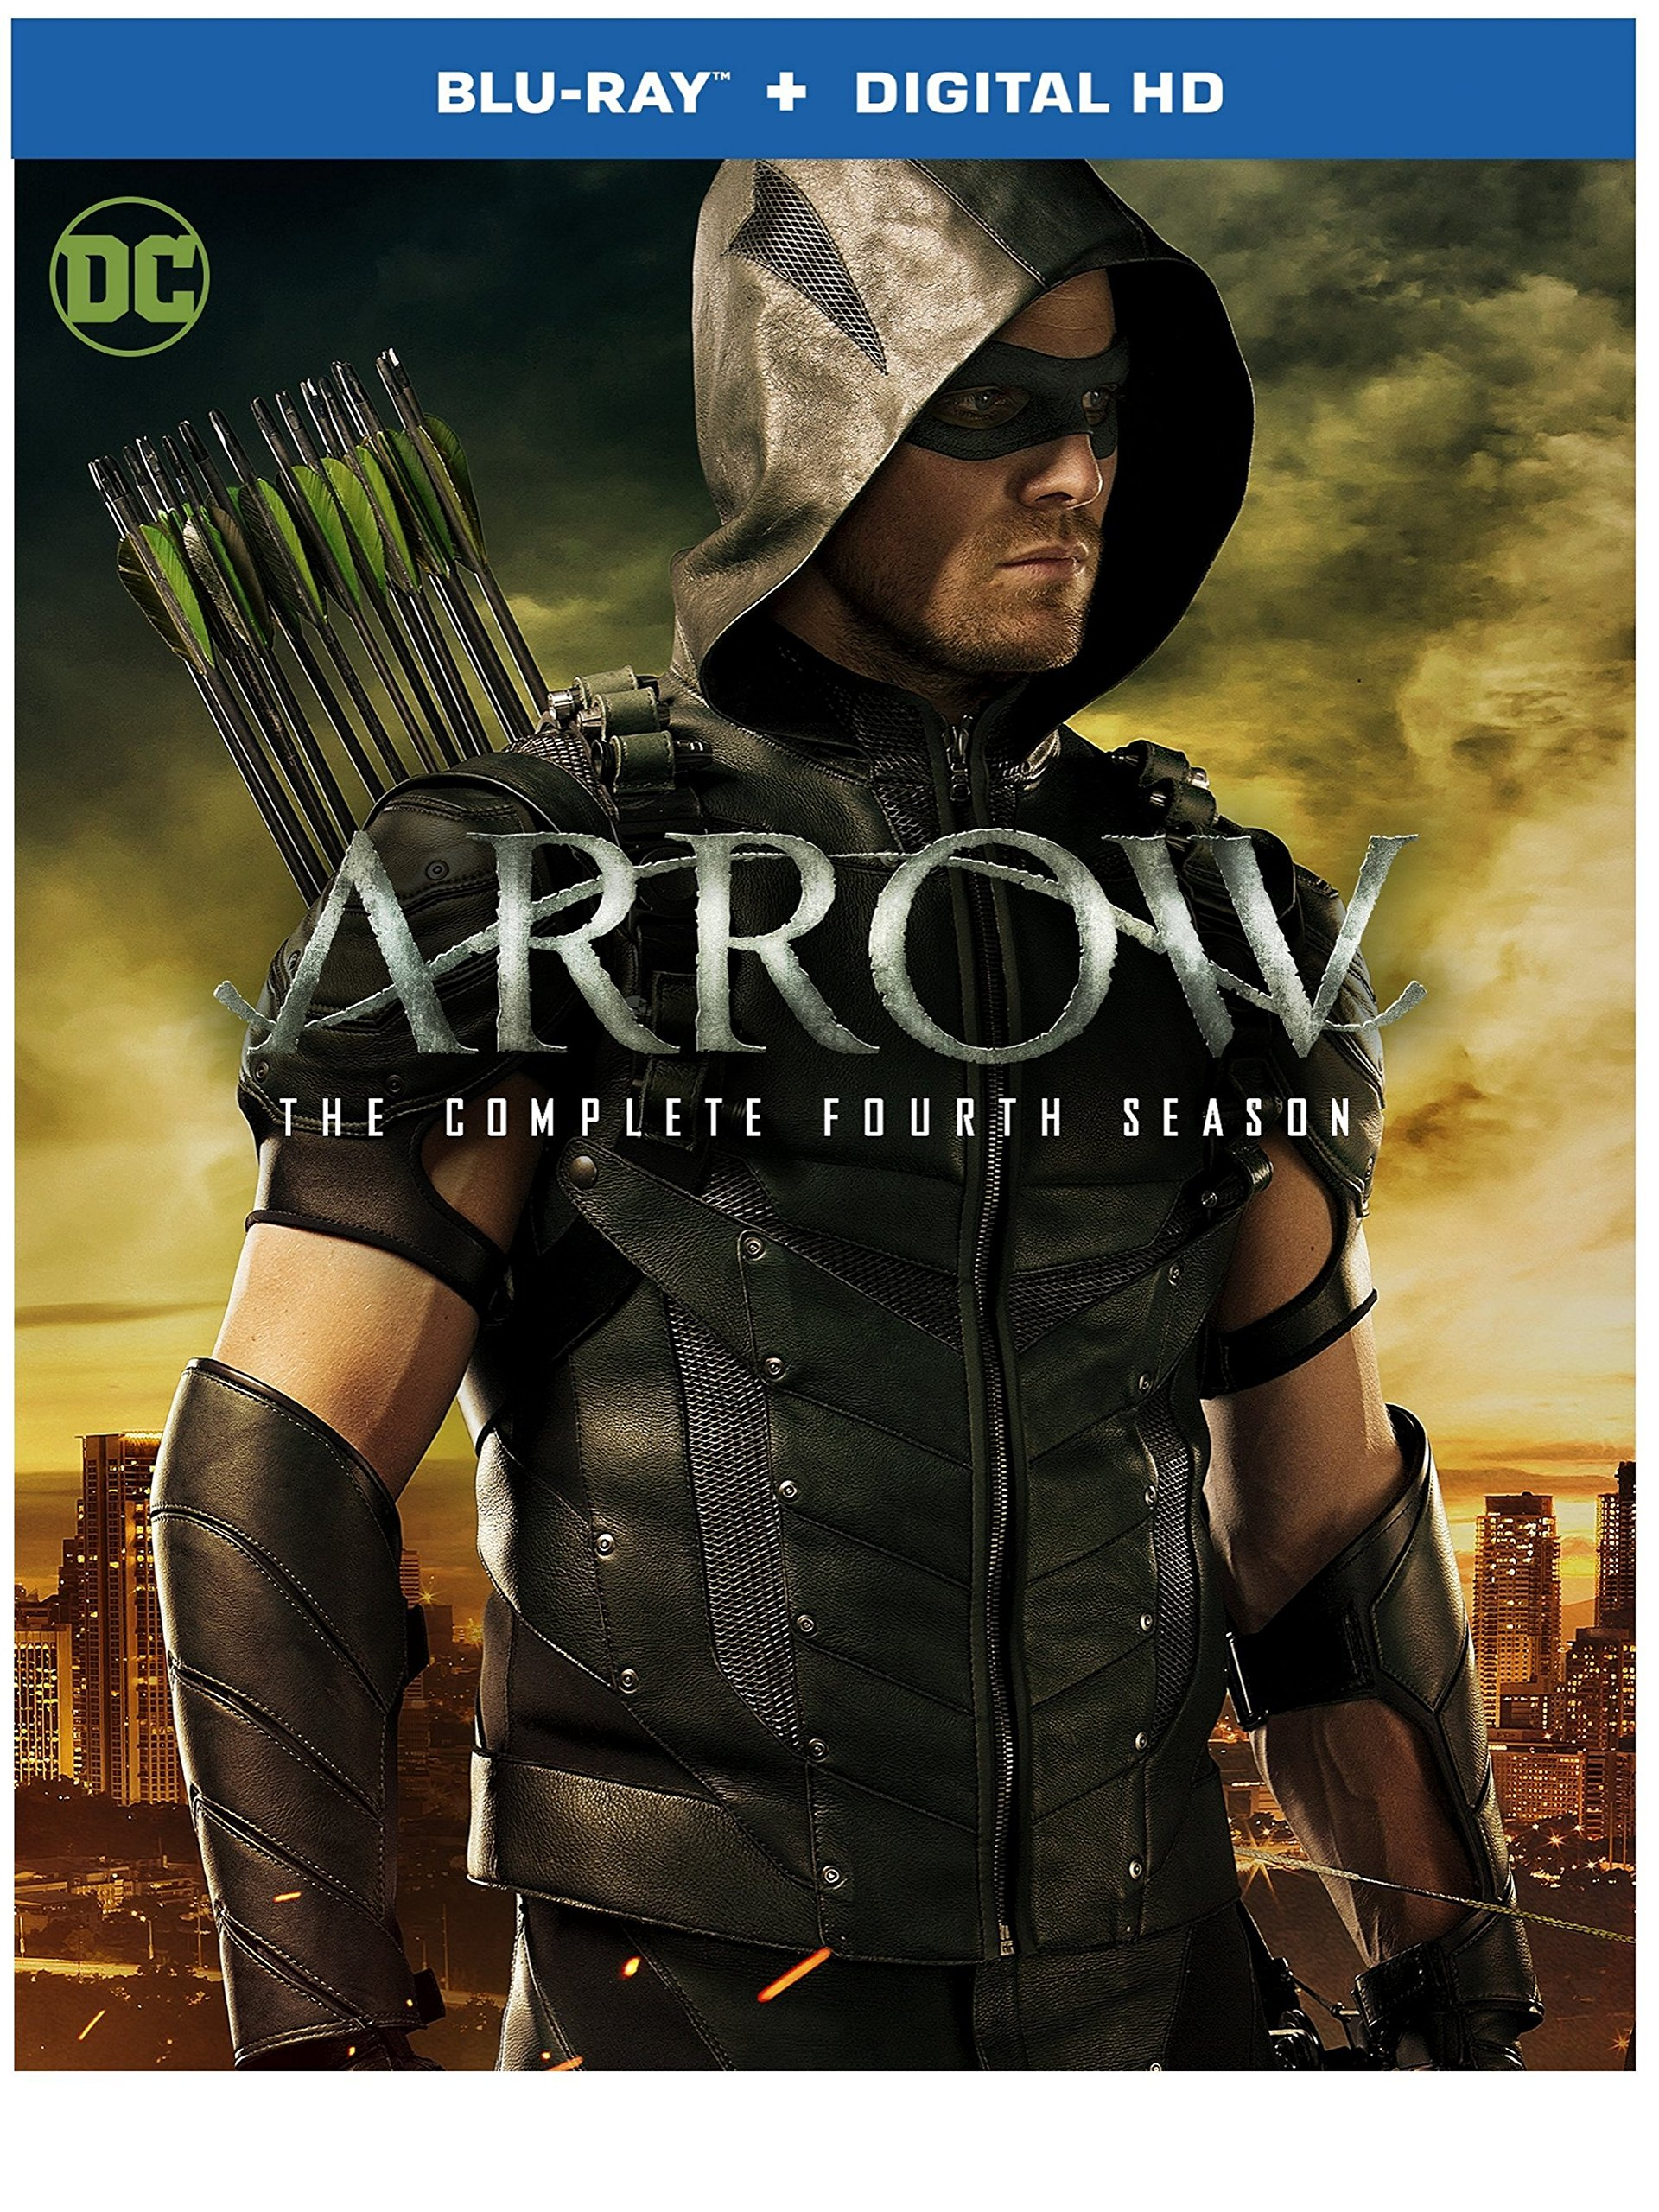 Blu-ray : Arrow: The Complete Fourth Season (DC) (Ultraviolet Digital Copy, , Slipsleeve Packaging, Dolby, AC-3)